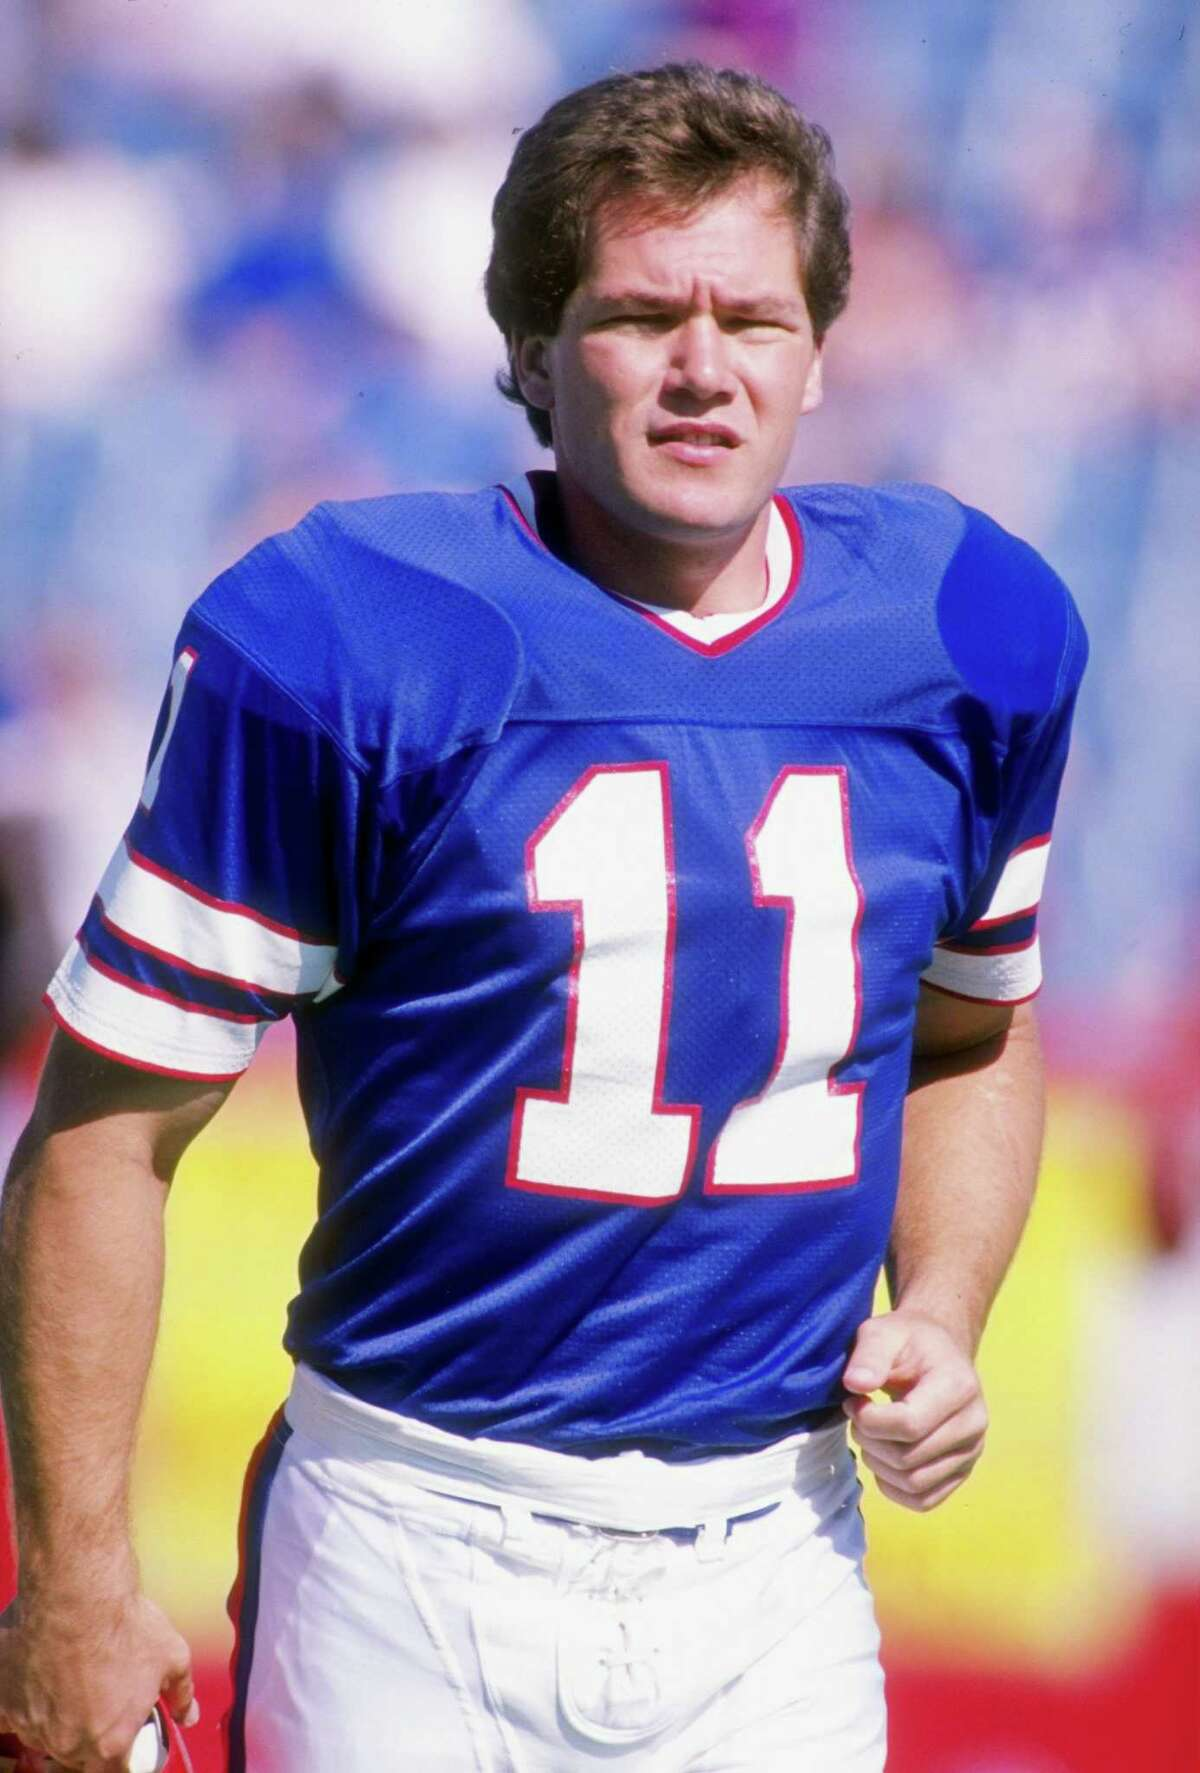 When Scott Norwood's 47-yard field goal attempt on the last play of the game missed to the right, it was the end to a dramatic Buffalo rally and what turned out to be the first of four consecutive Super Bowl defeats for the Bills.